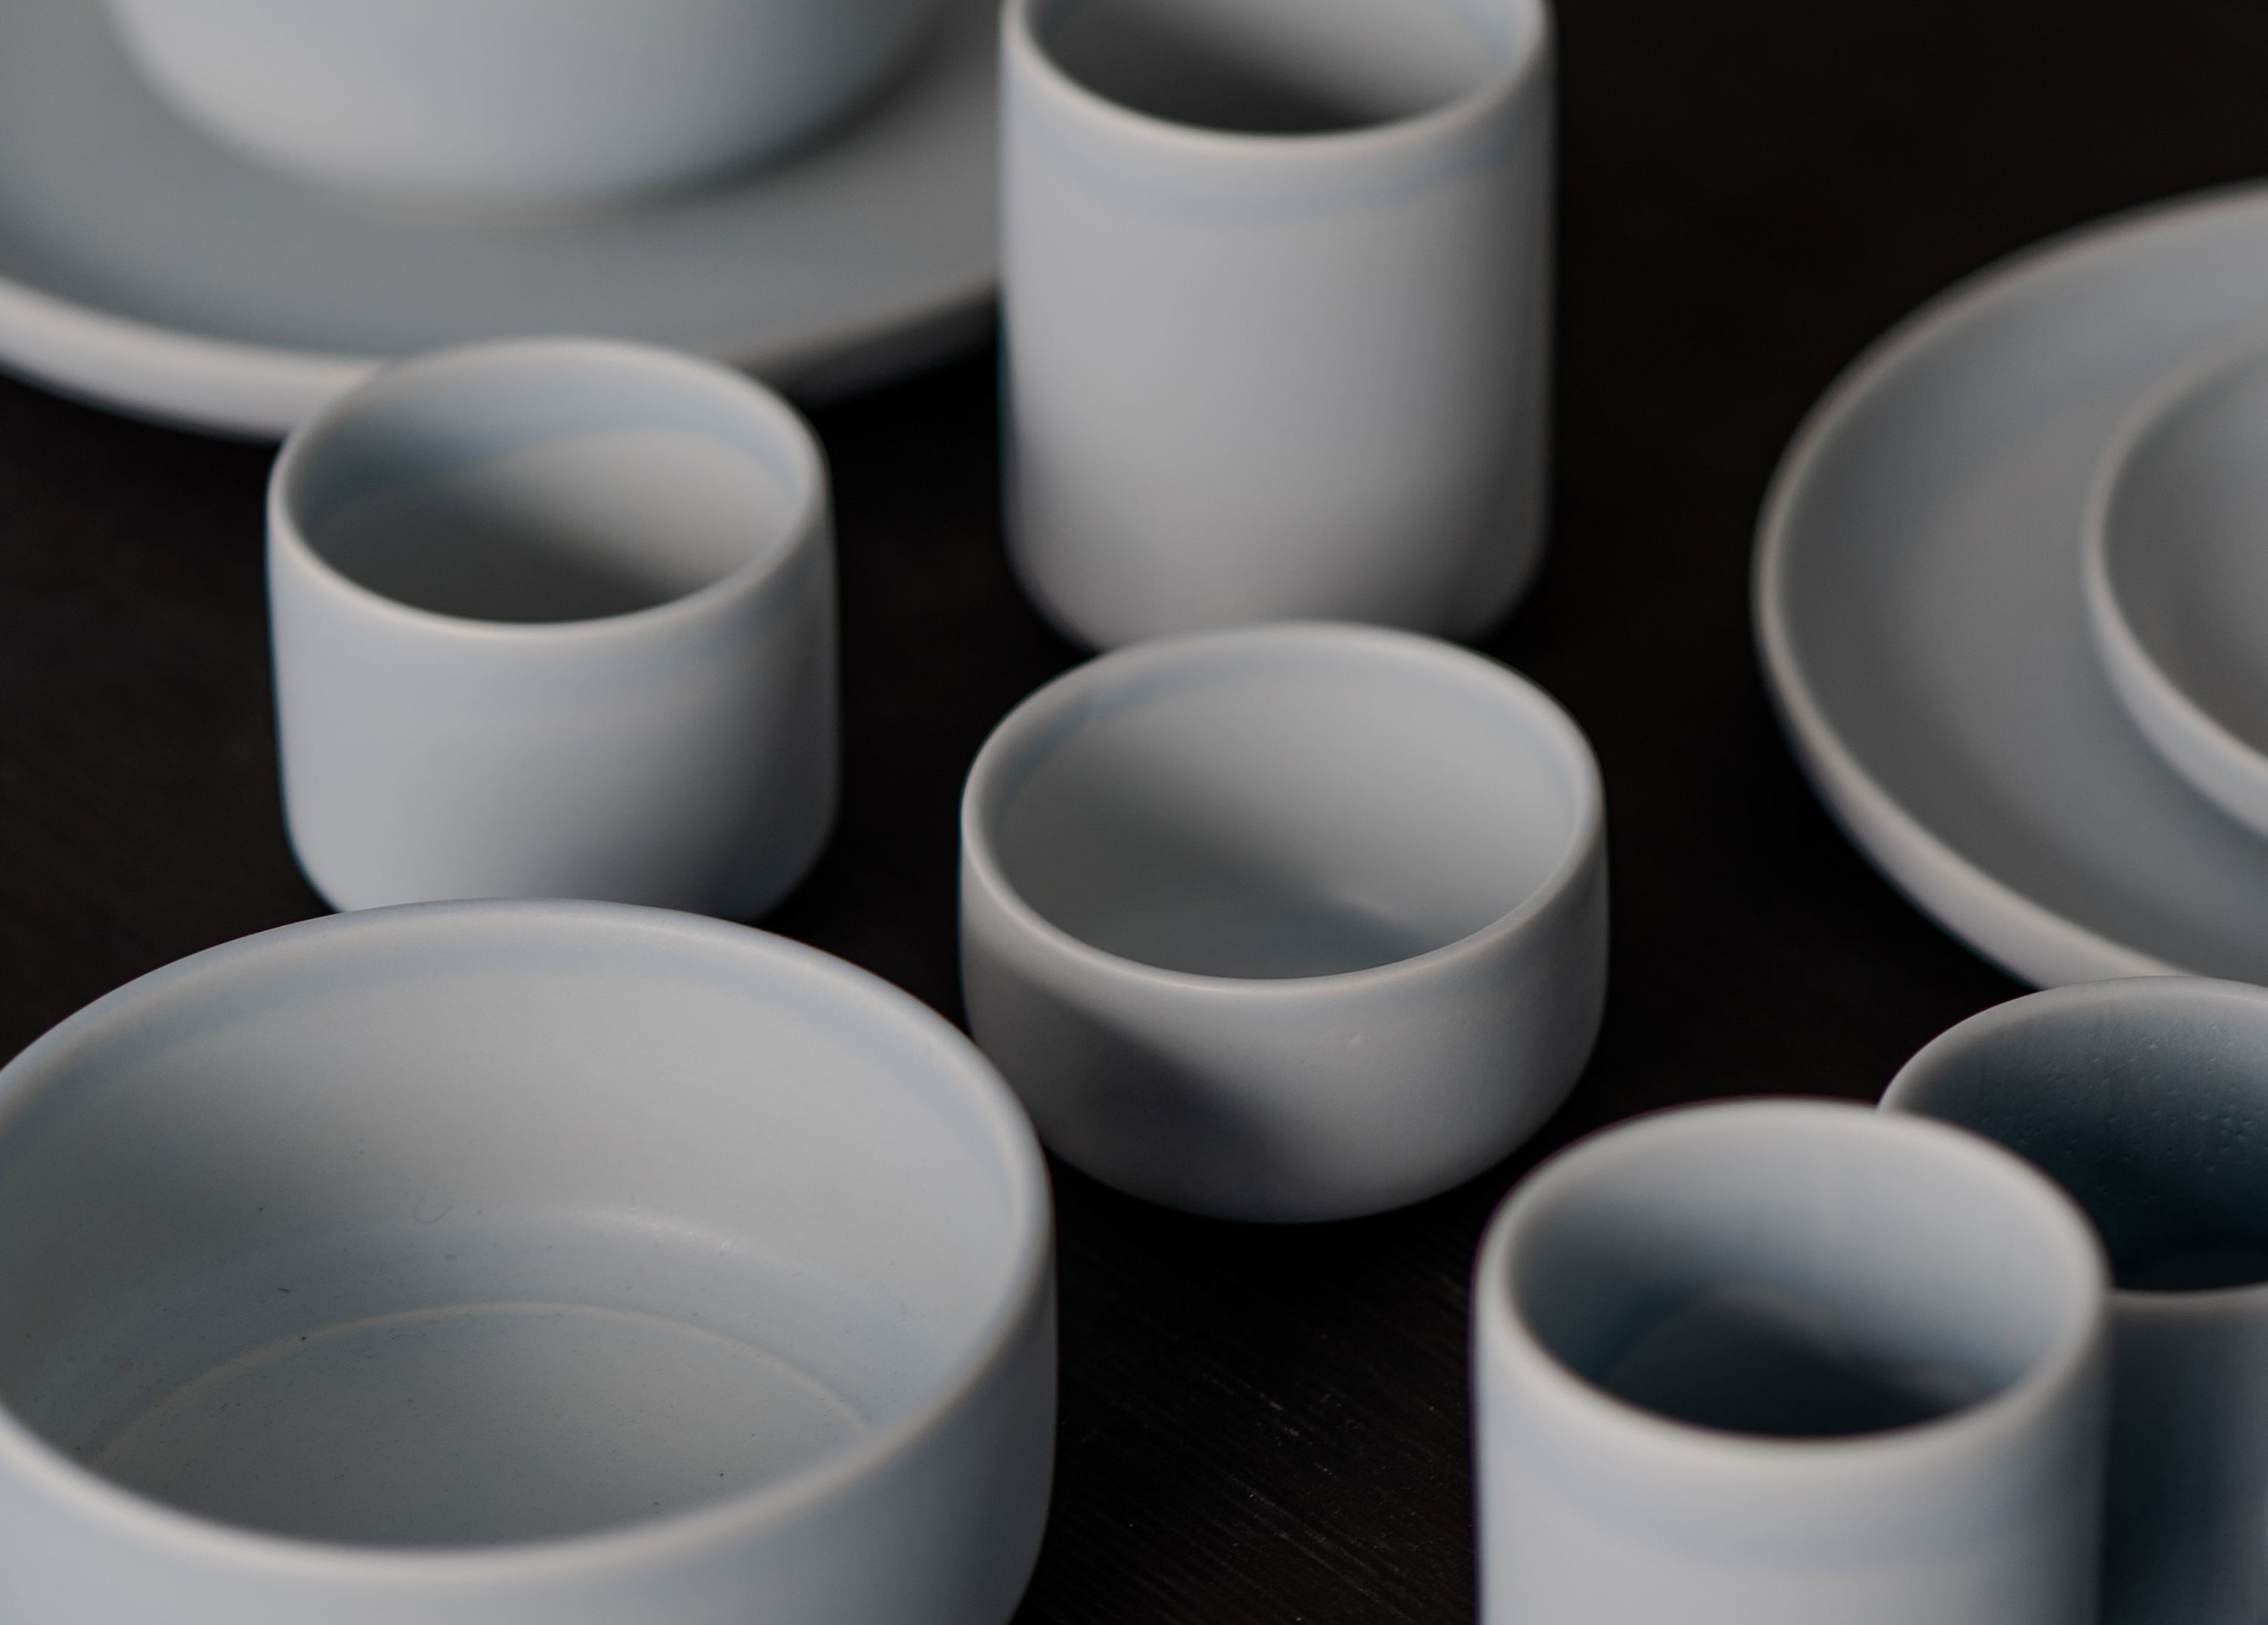 PISU ceramic handcrafted tableware